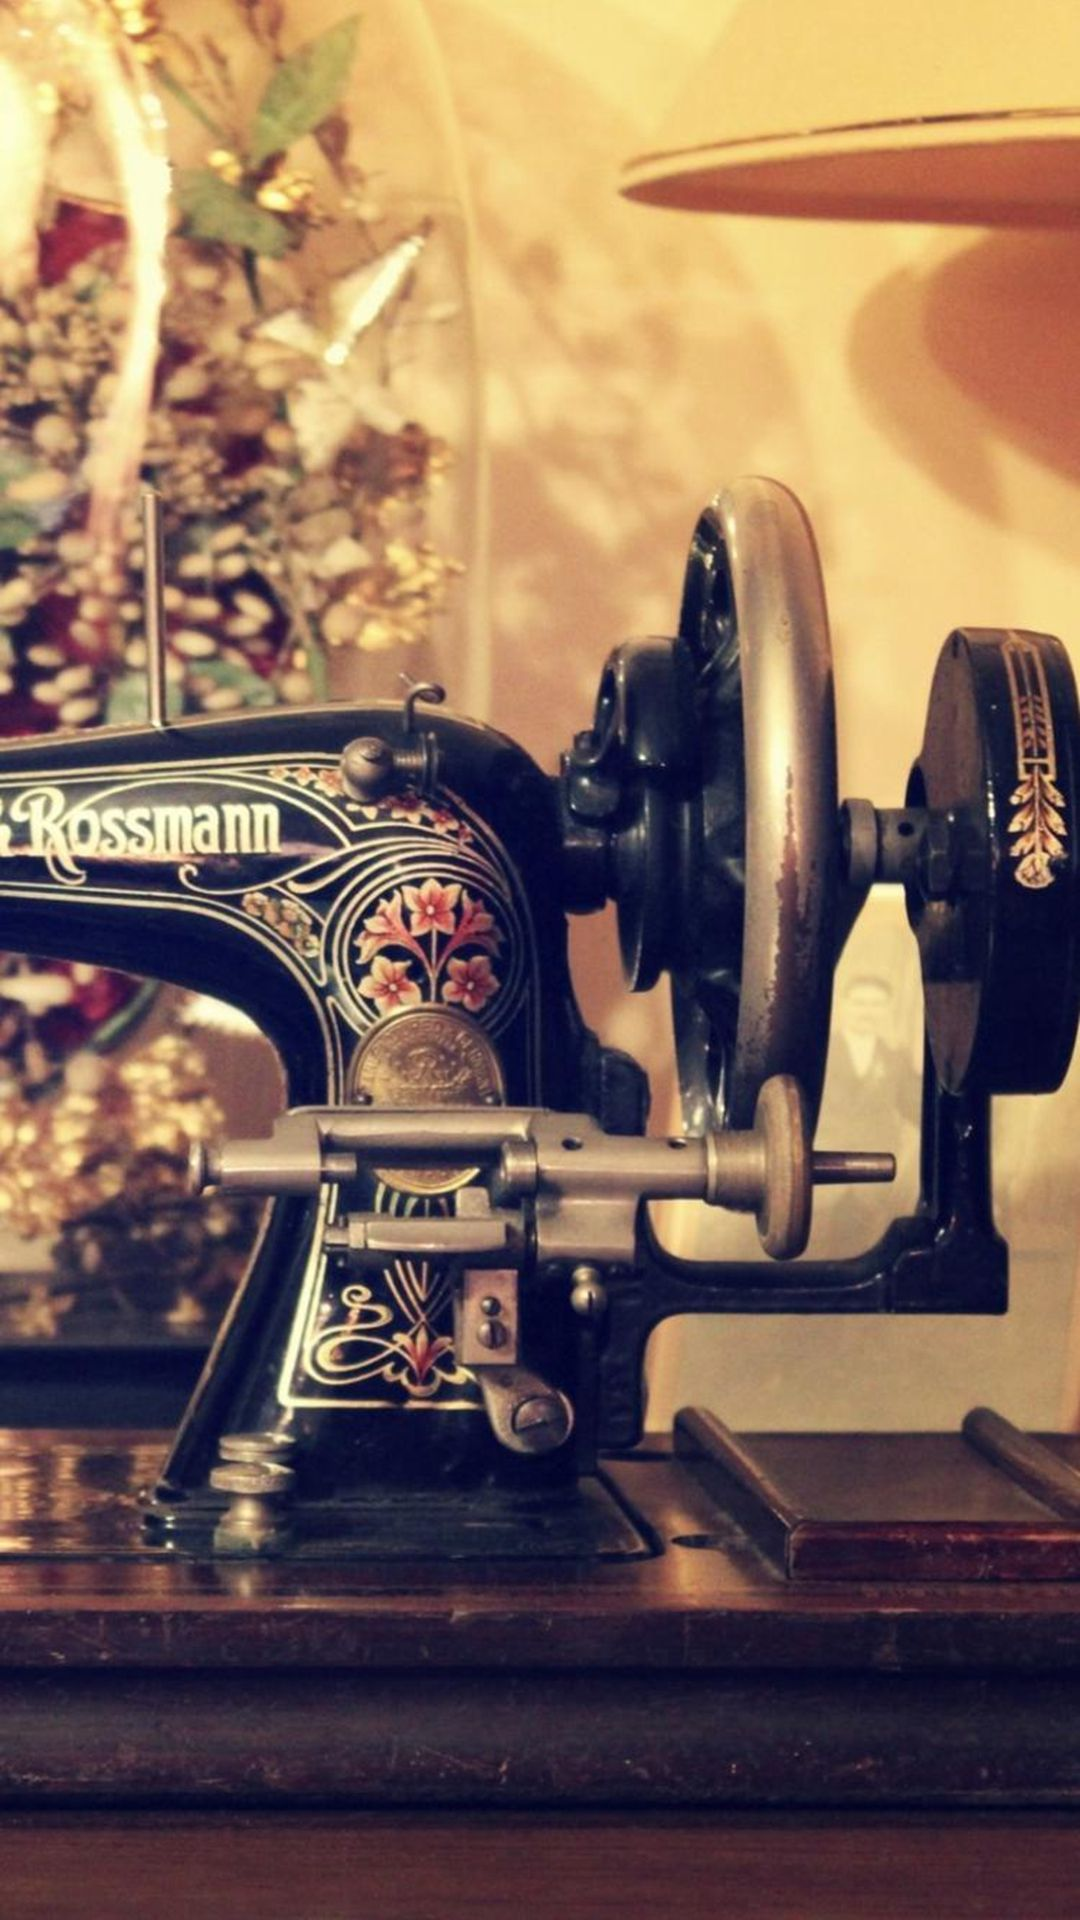 Retro Sewing Machine Table IPhone 6 Plus Wallpaper